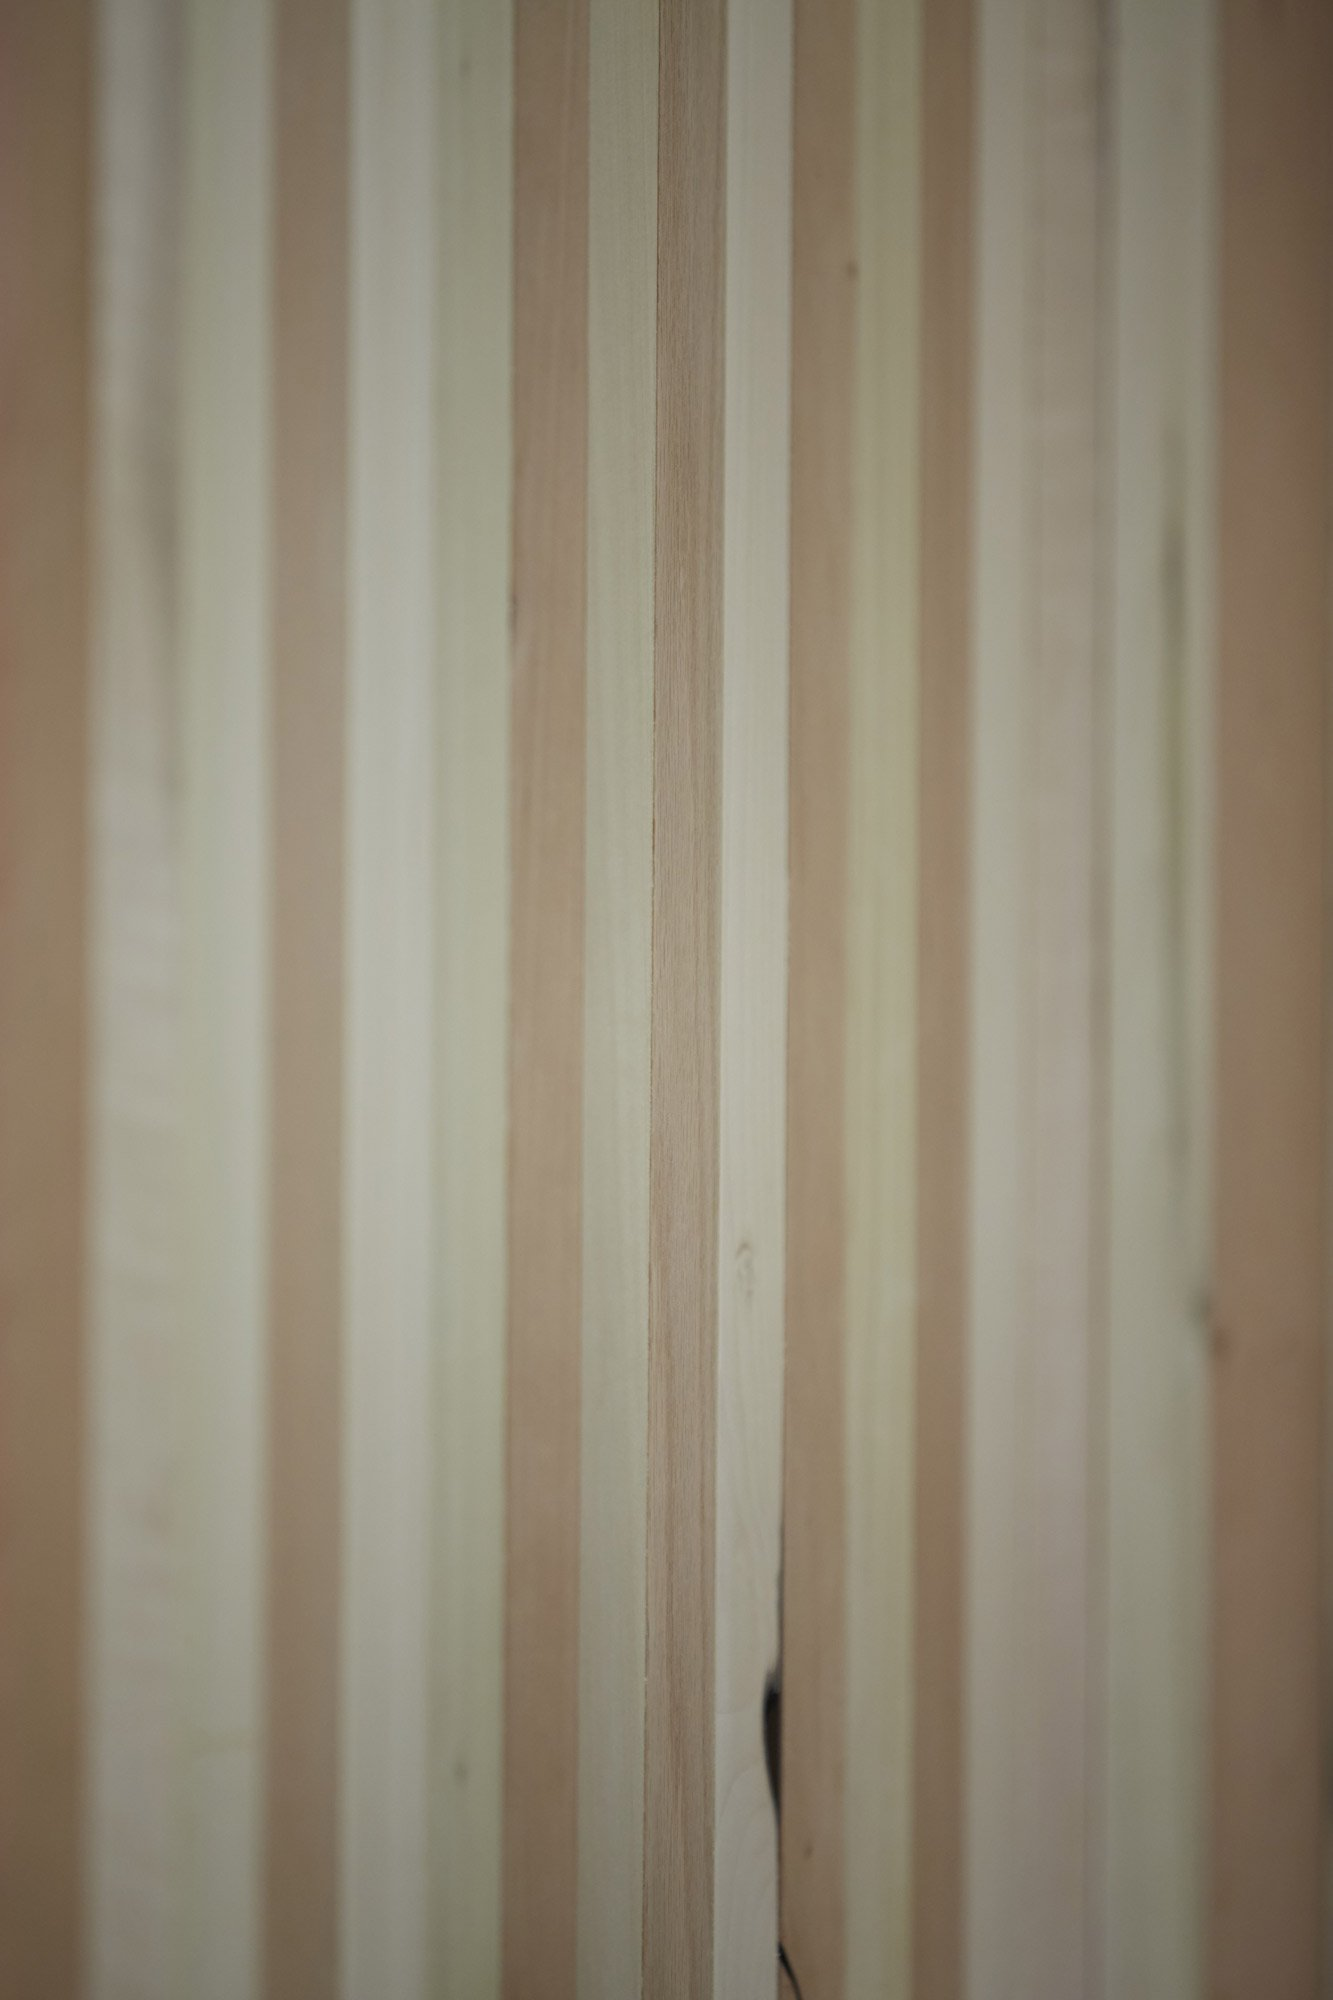 Too Good To Waste: Smoothly finished American tulipwood, cherry, maple and red oak © Jon Cardwel